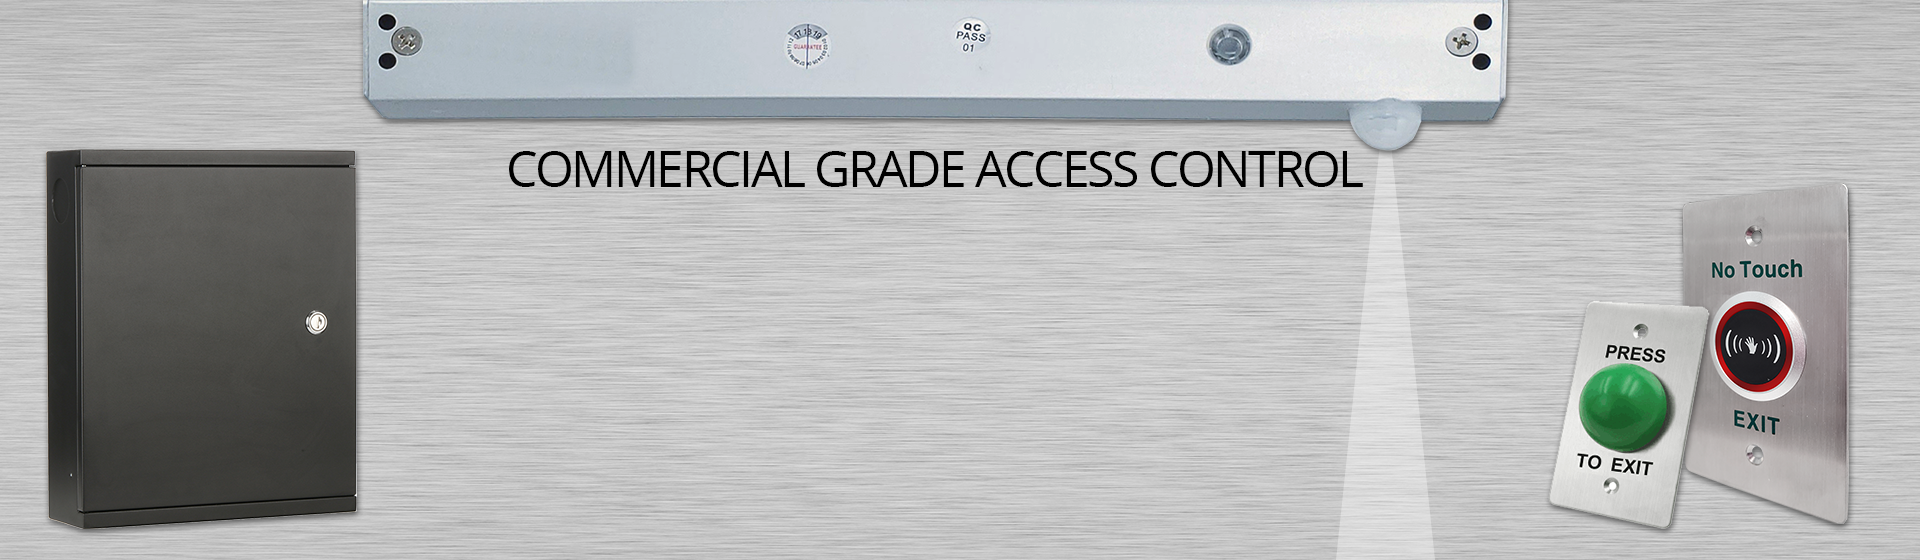 Commercial grade access control systems